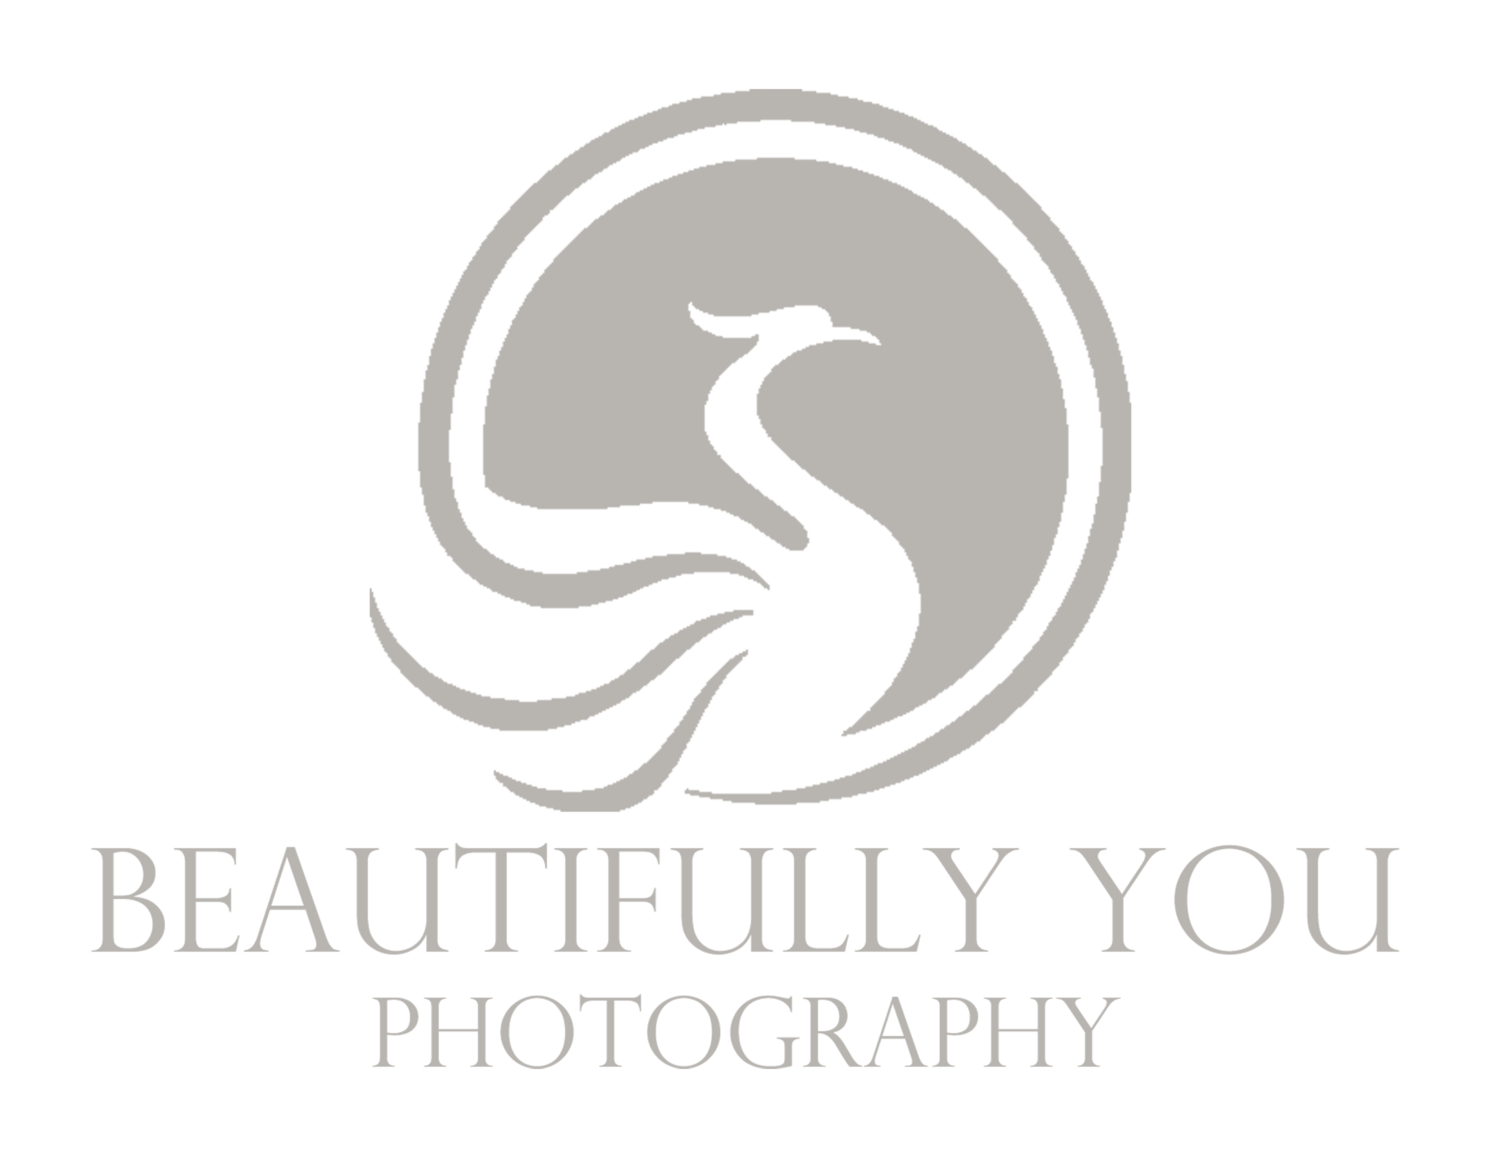 Beautifully You Photography